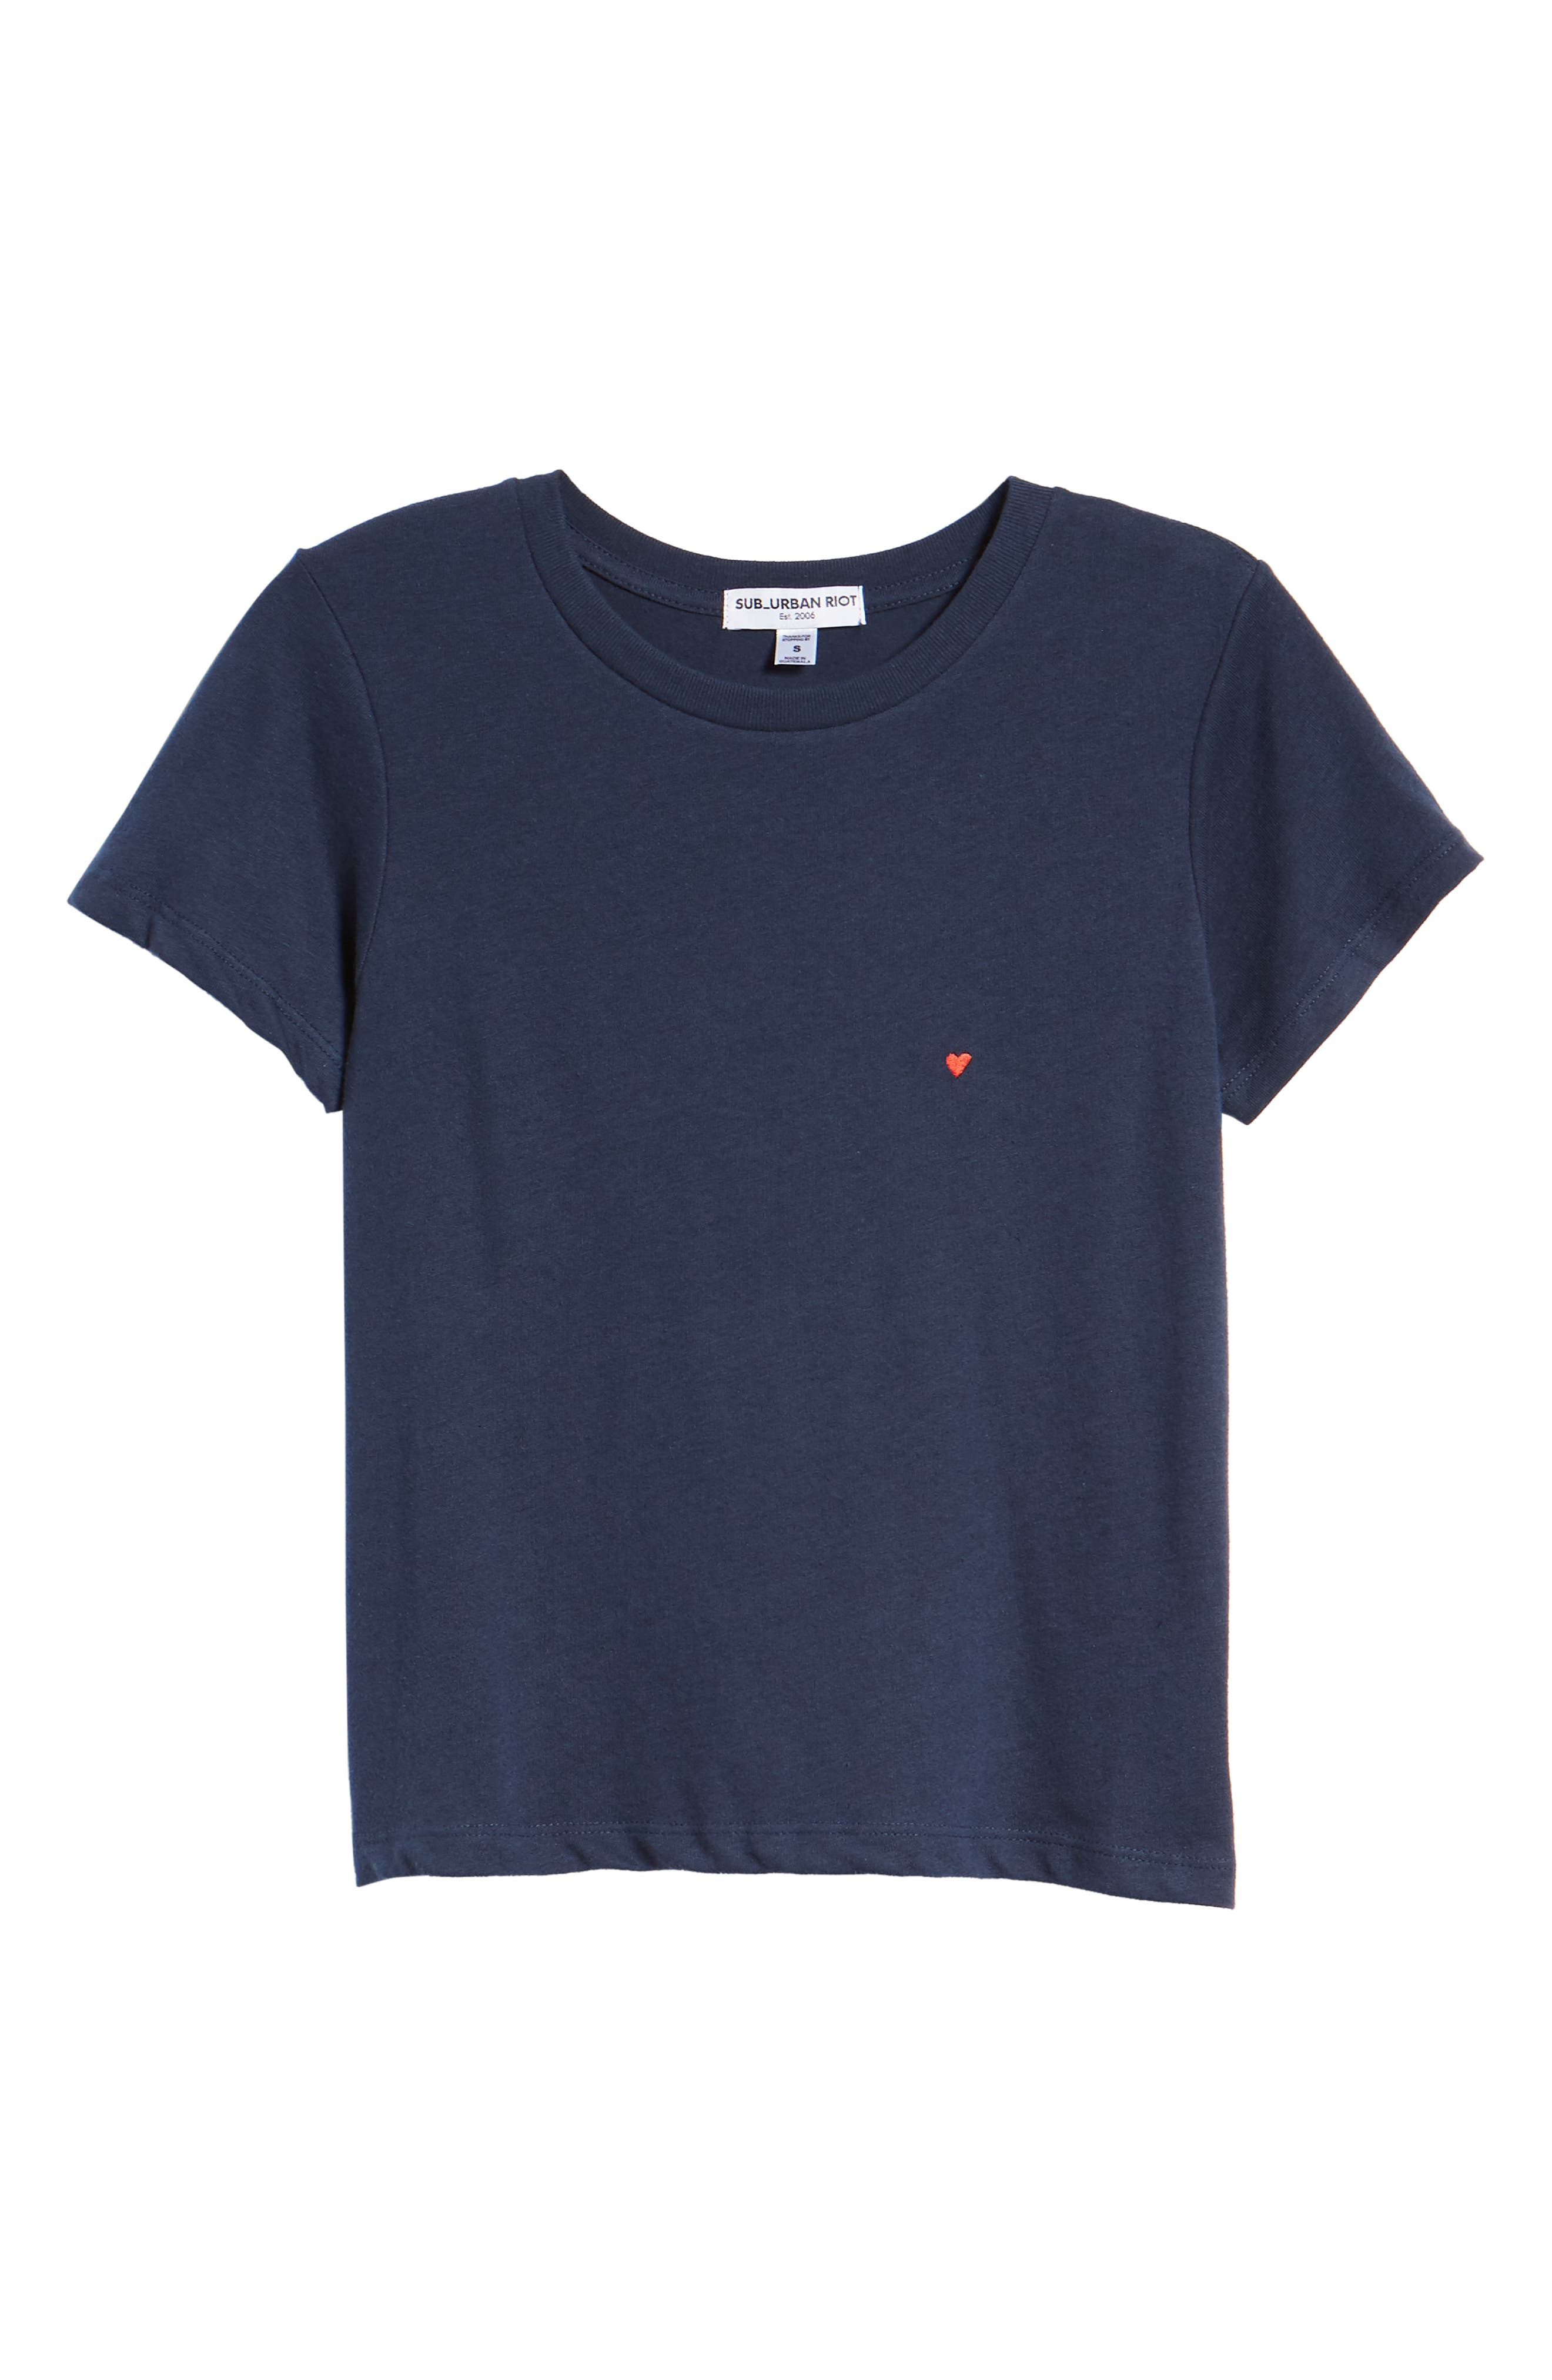 Embroidered Heart Tee,                             Alternate thumbnail 12, color,